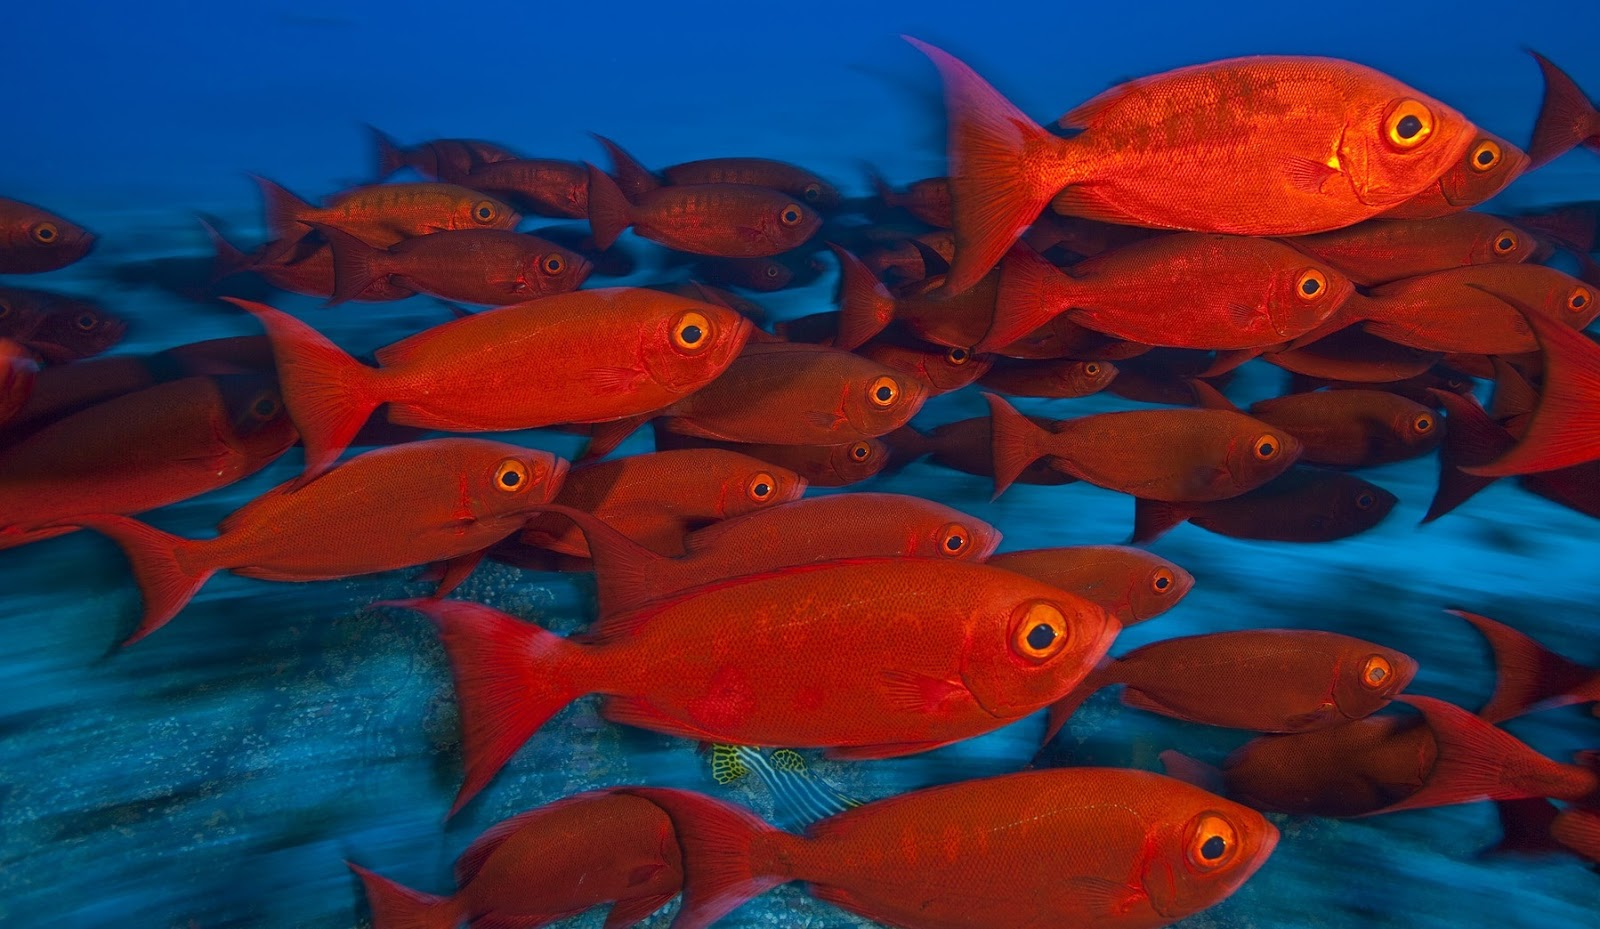 ➞ Latest Colorful Fish Images Photos Wallpapers Free Download ...